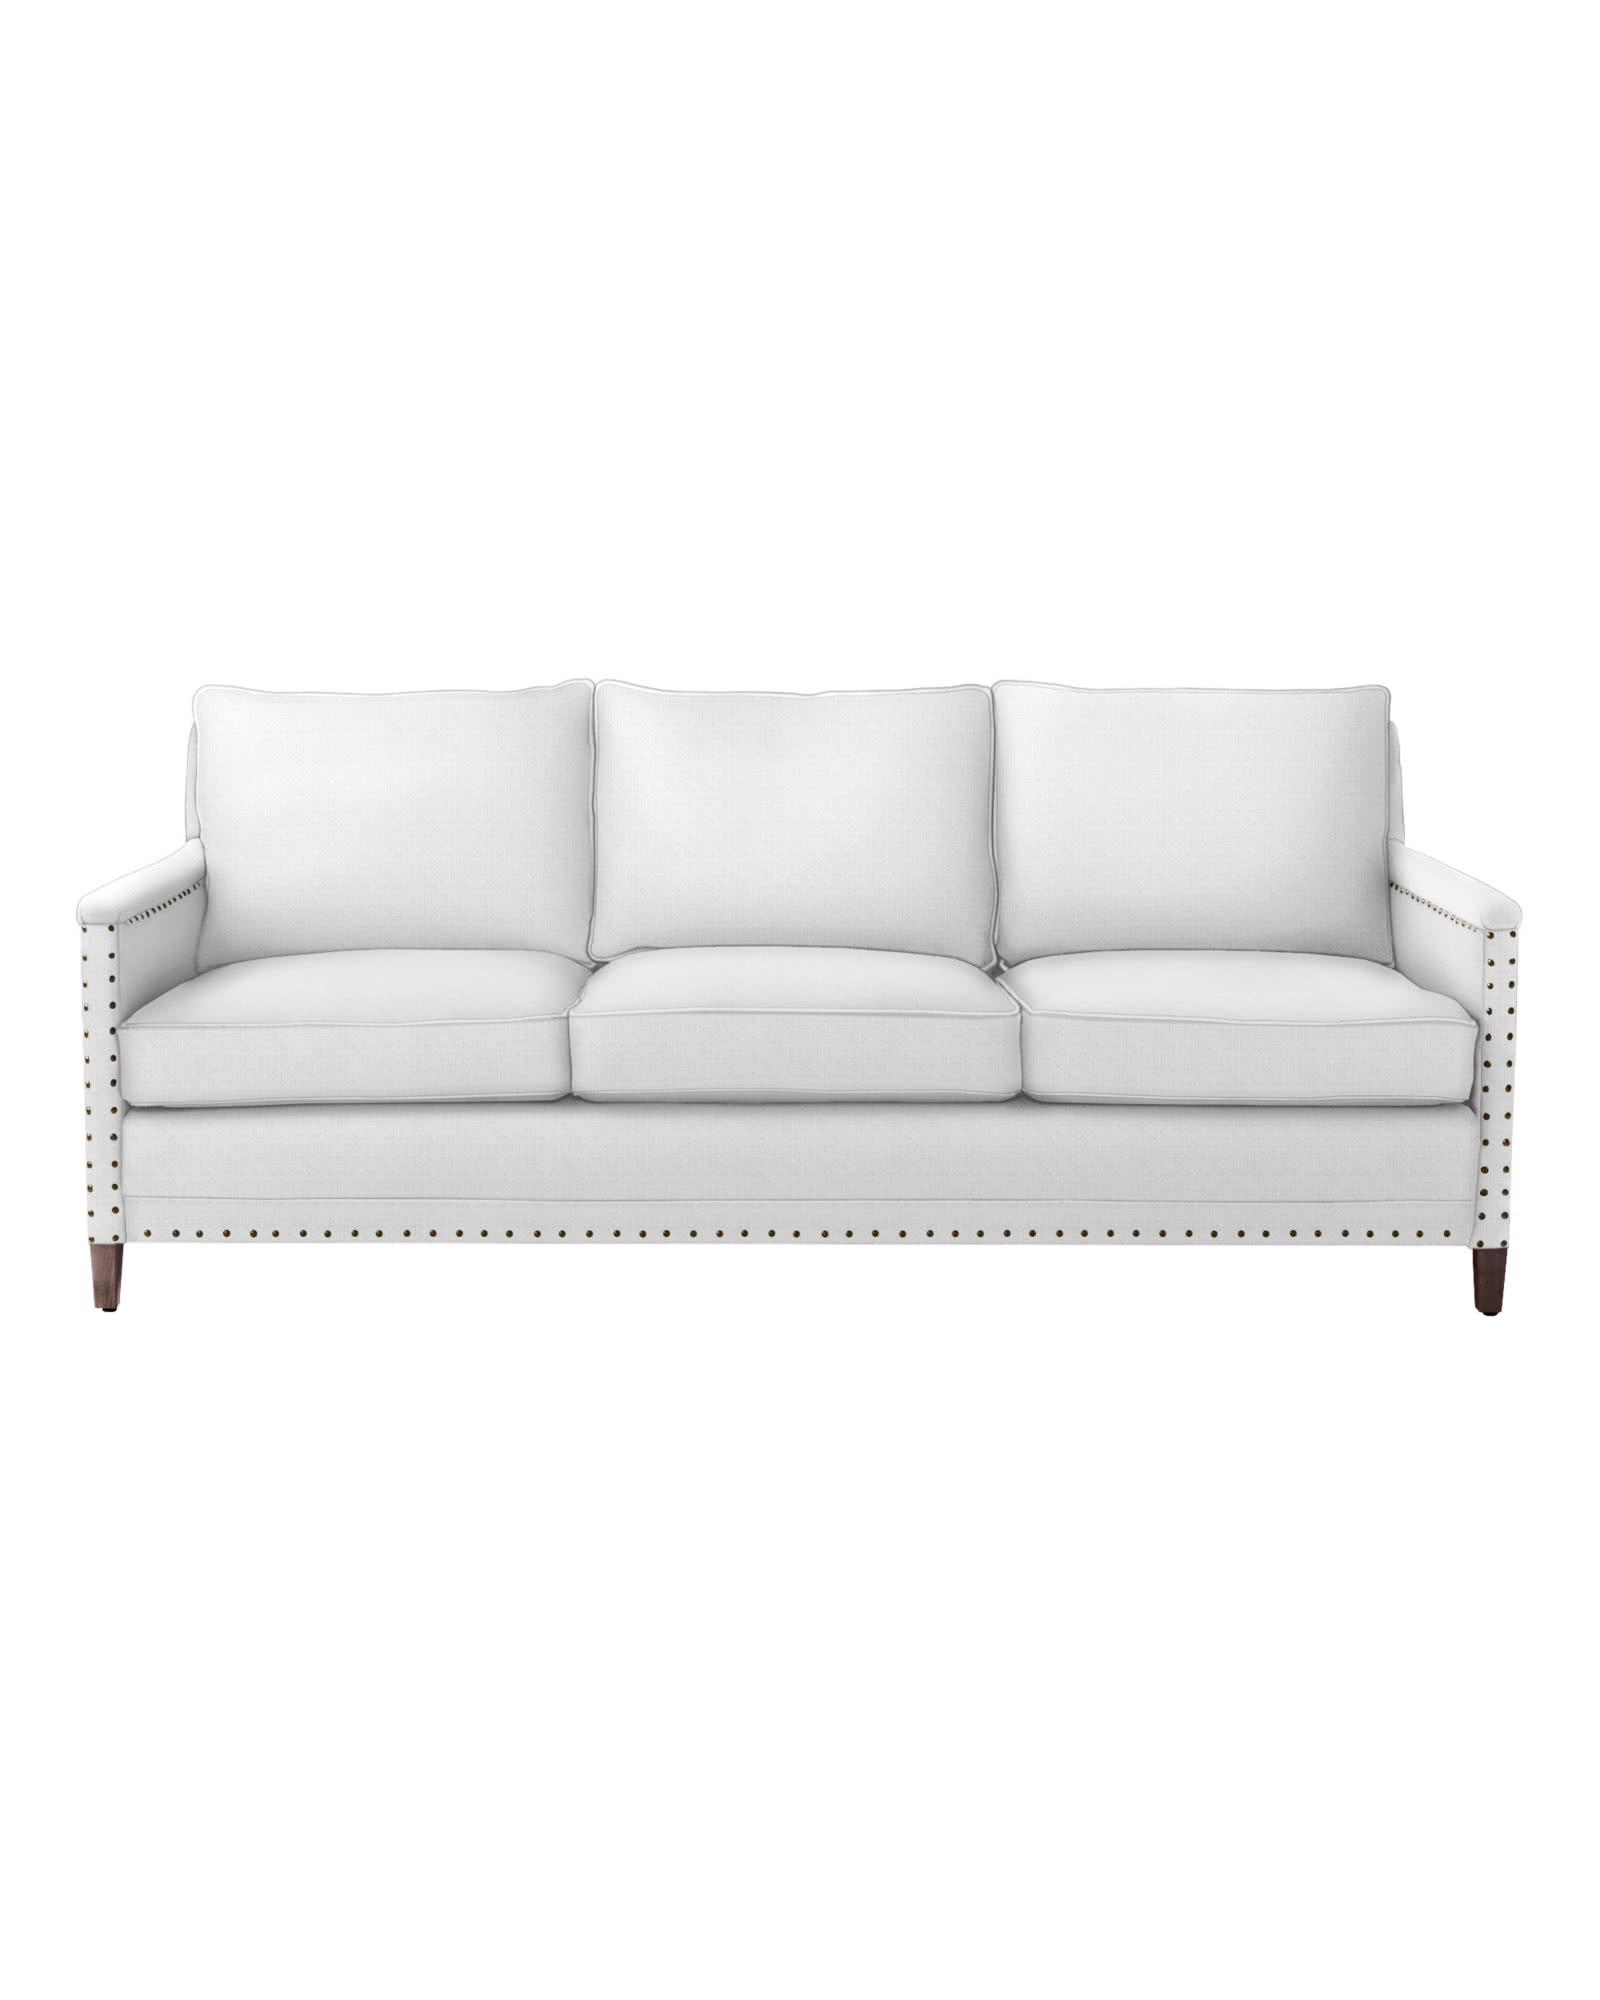 Spruce Street 3-Seat Sofa with Nailheads